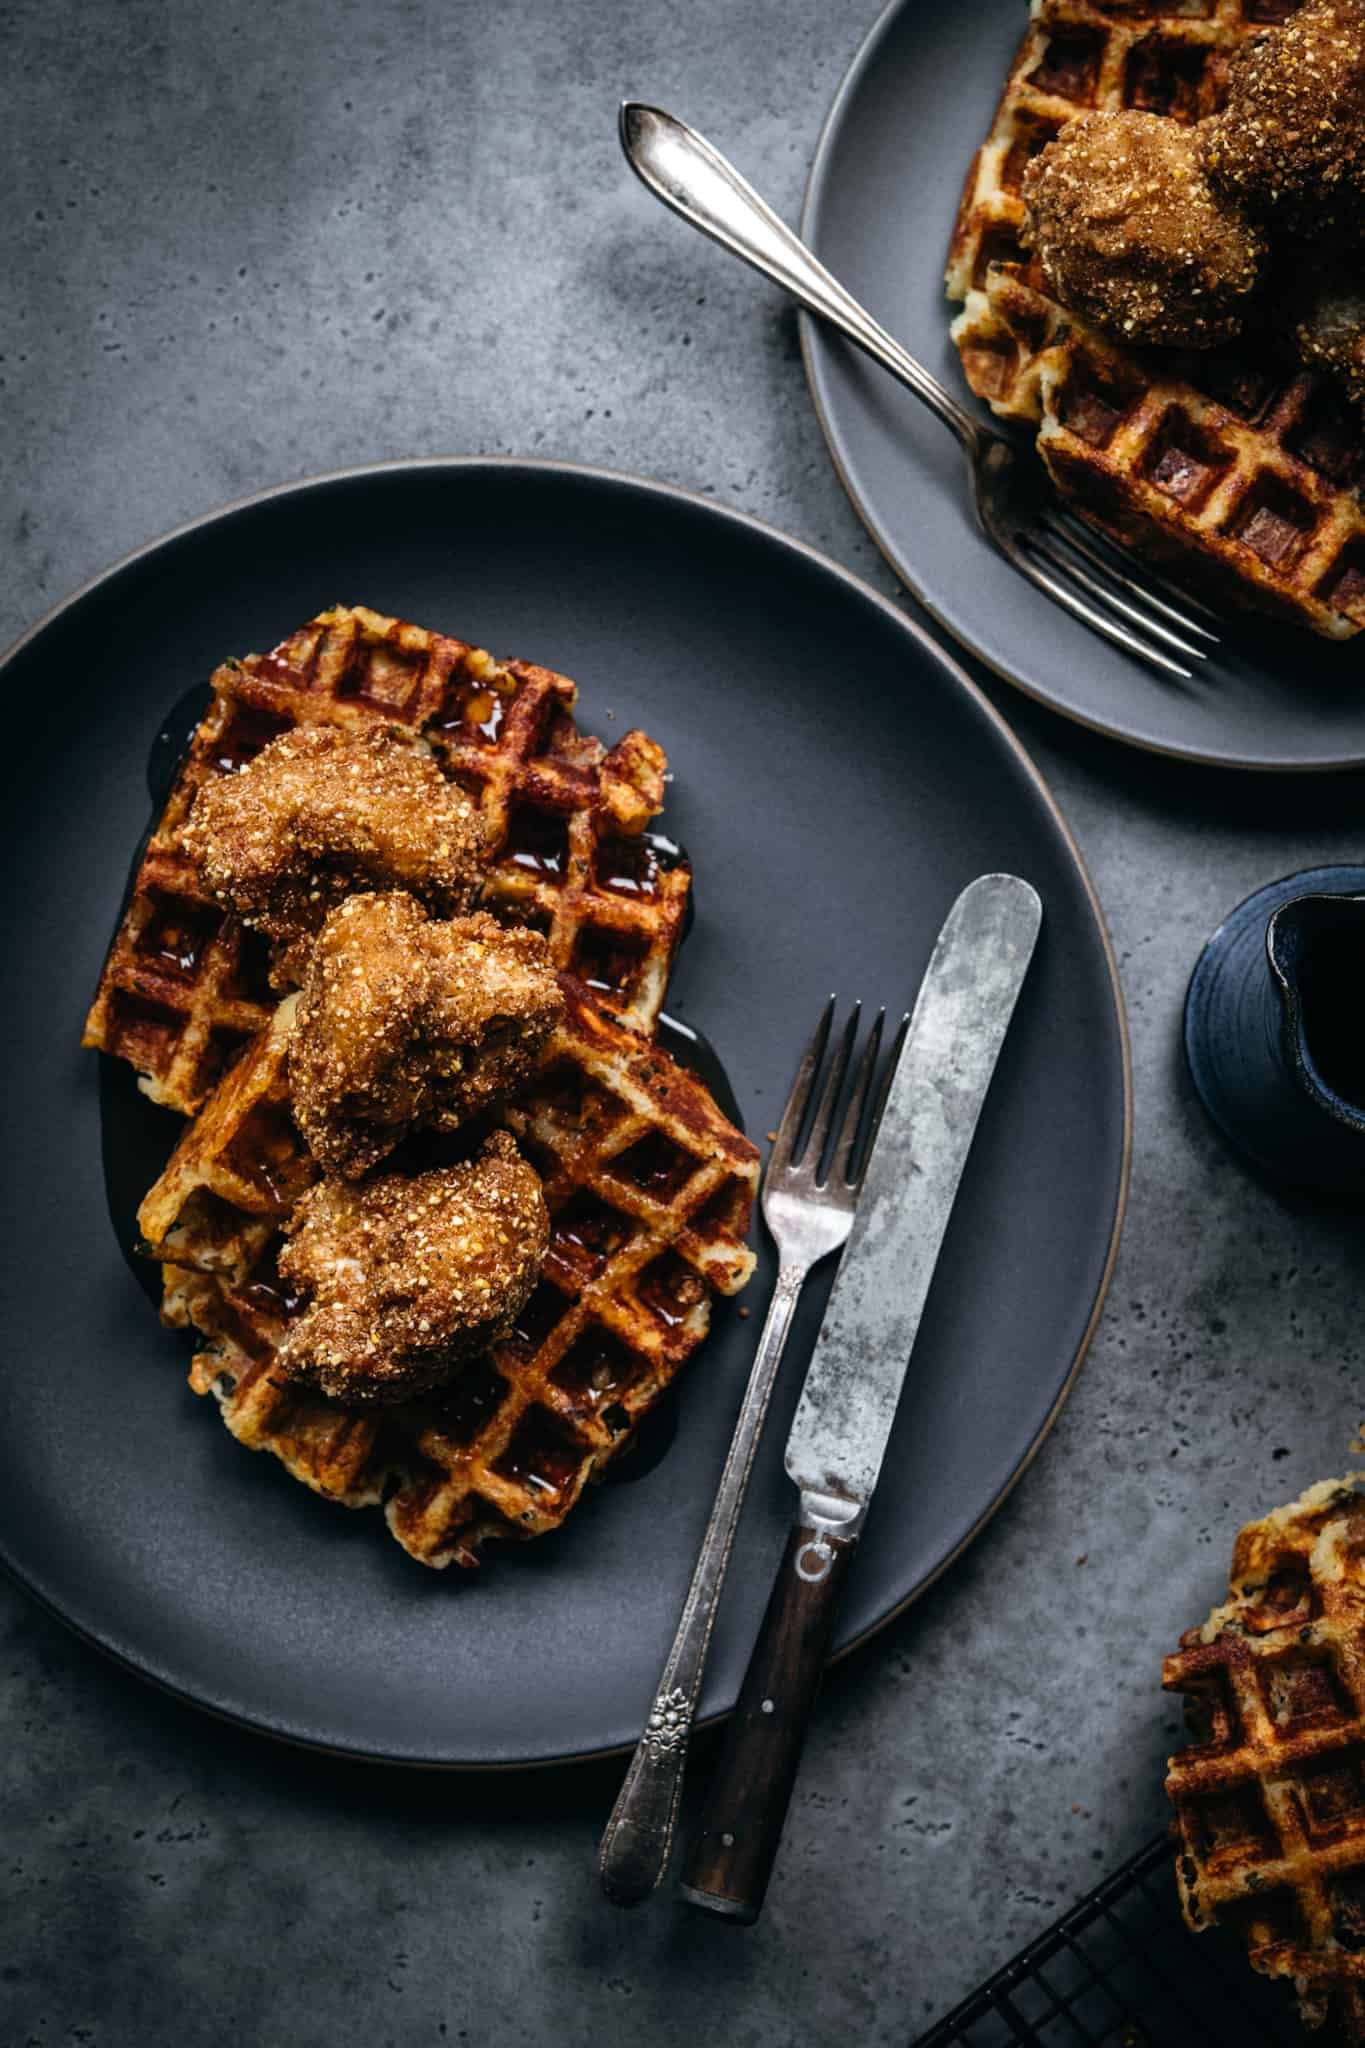 overhead view of vegan chicken and waffles on grey plate with hot maple syrup and fork